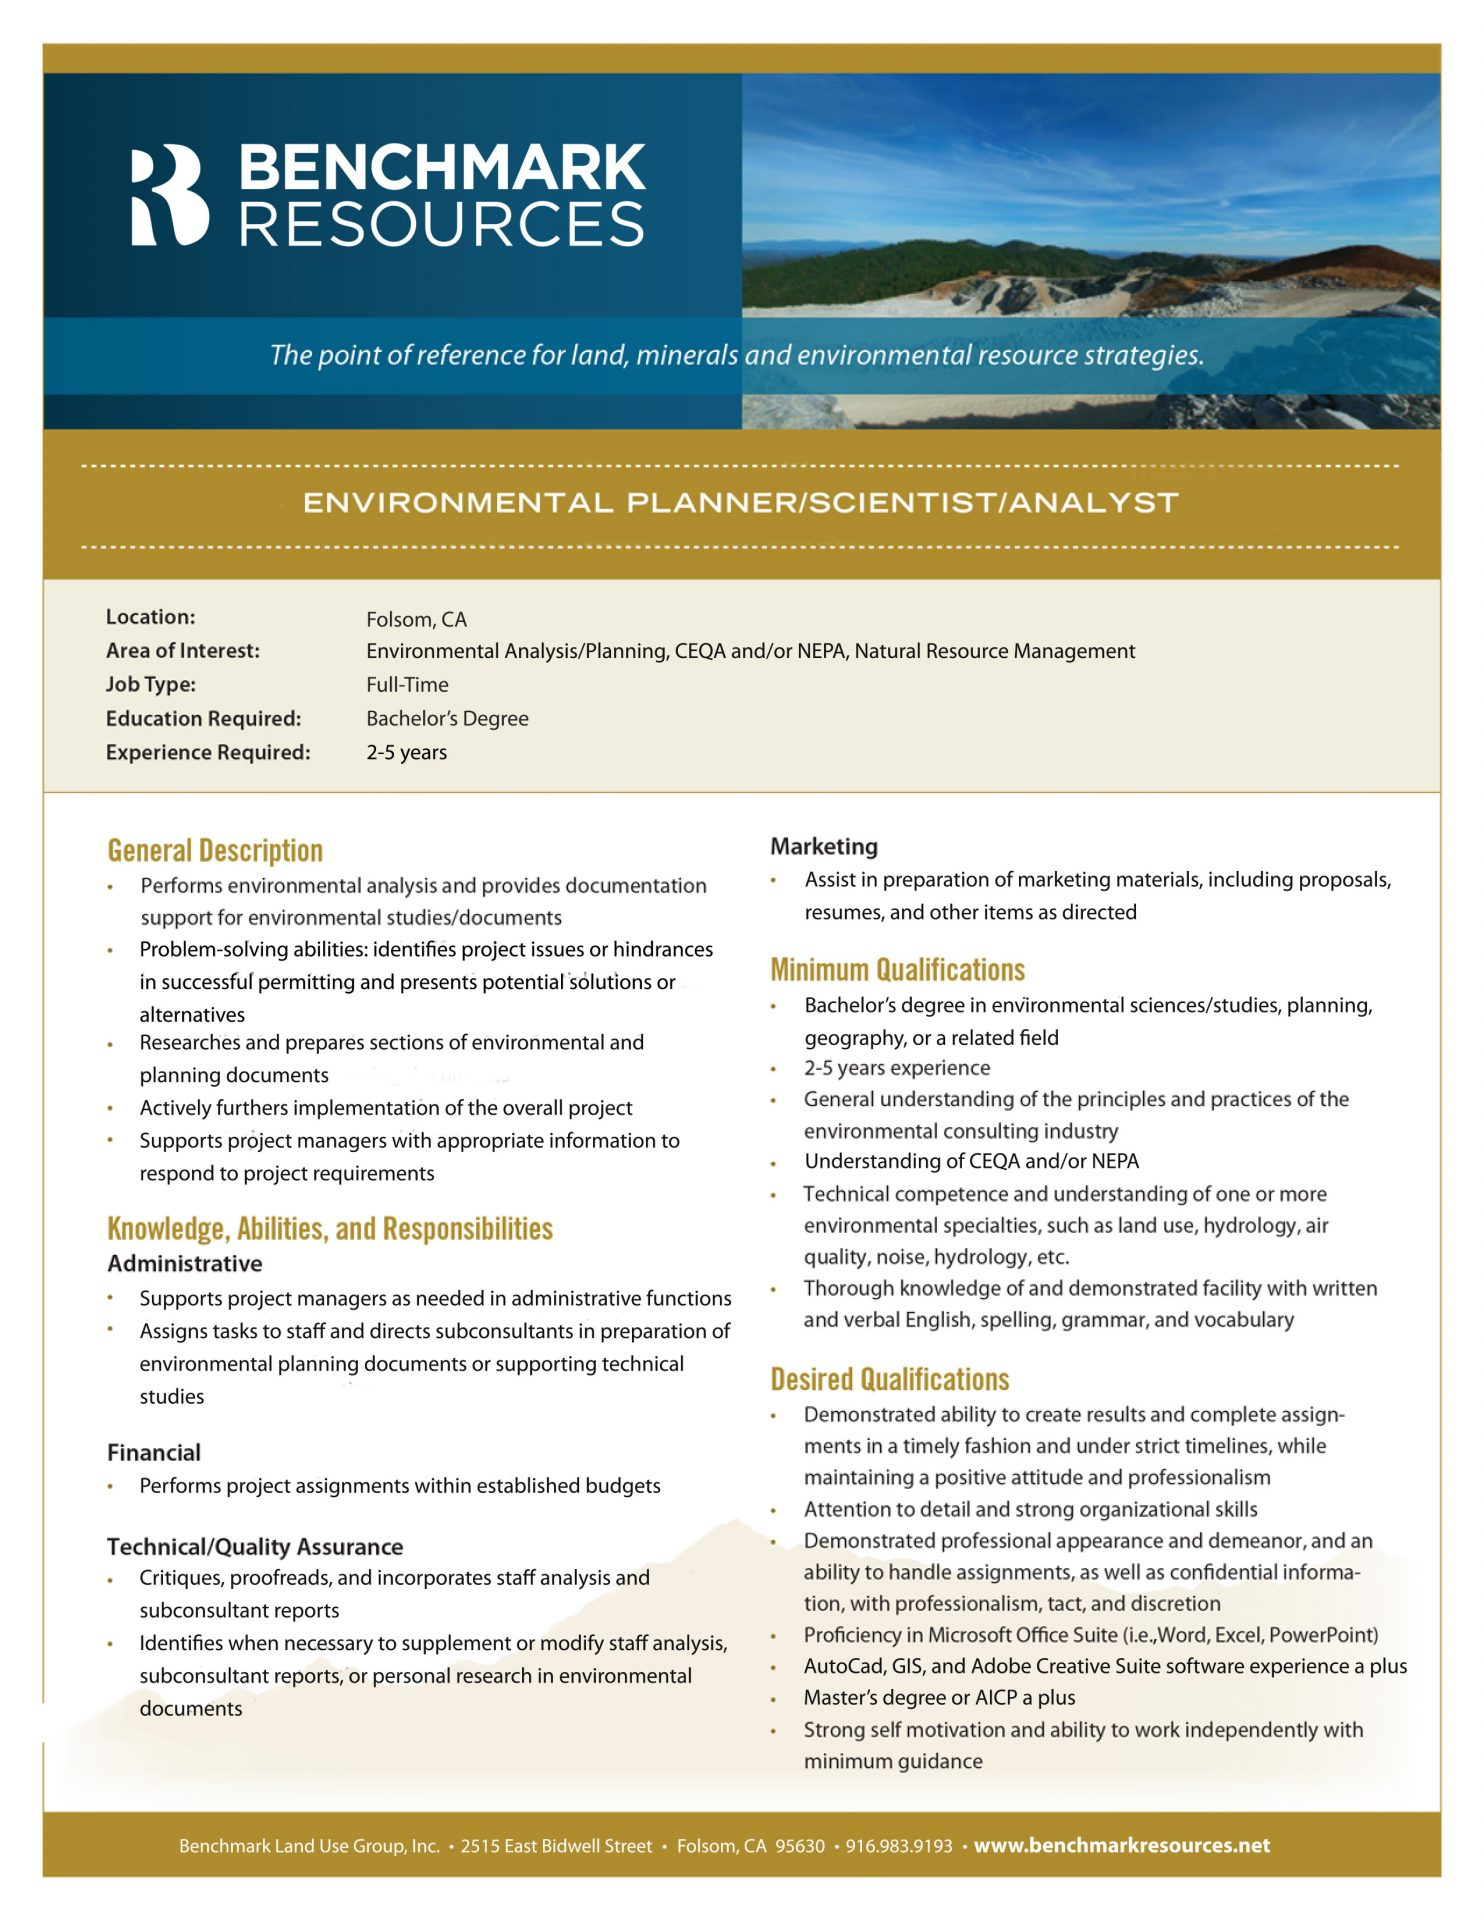 Career Opportunities | Benchmark Resources Environmental